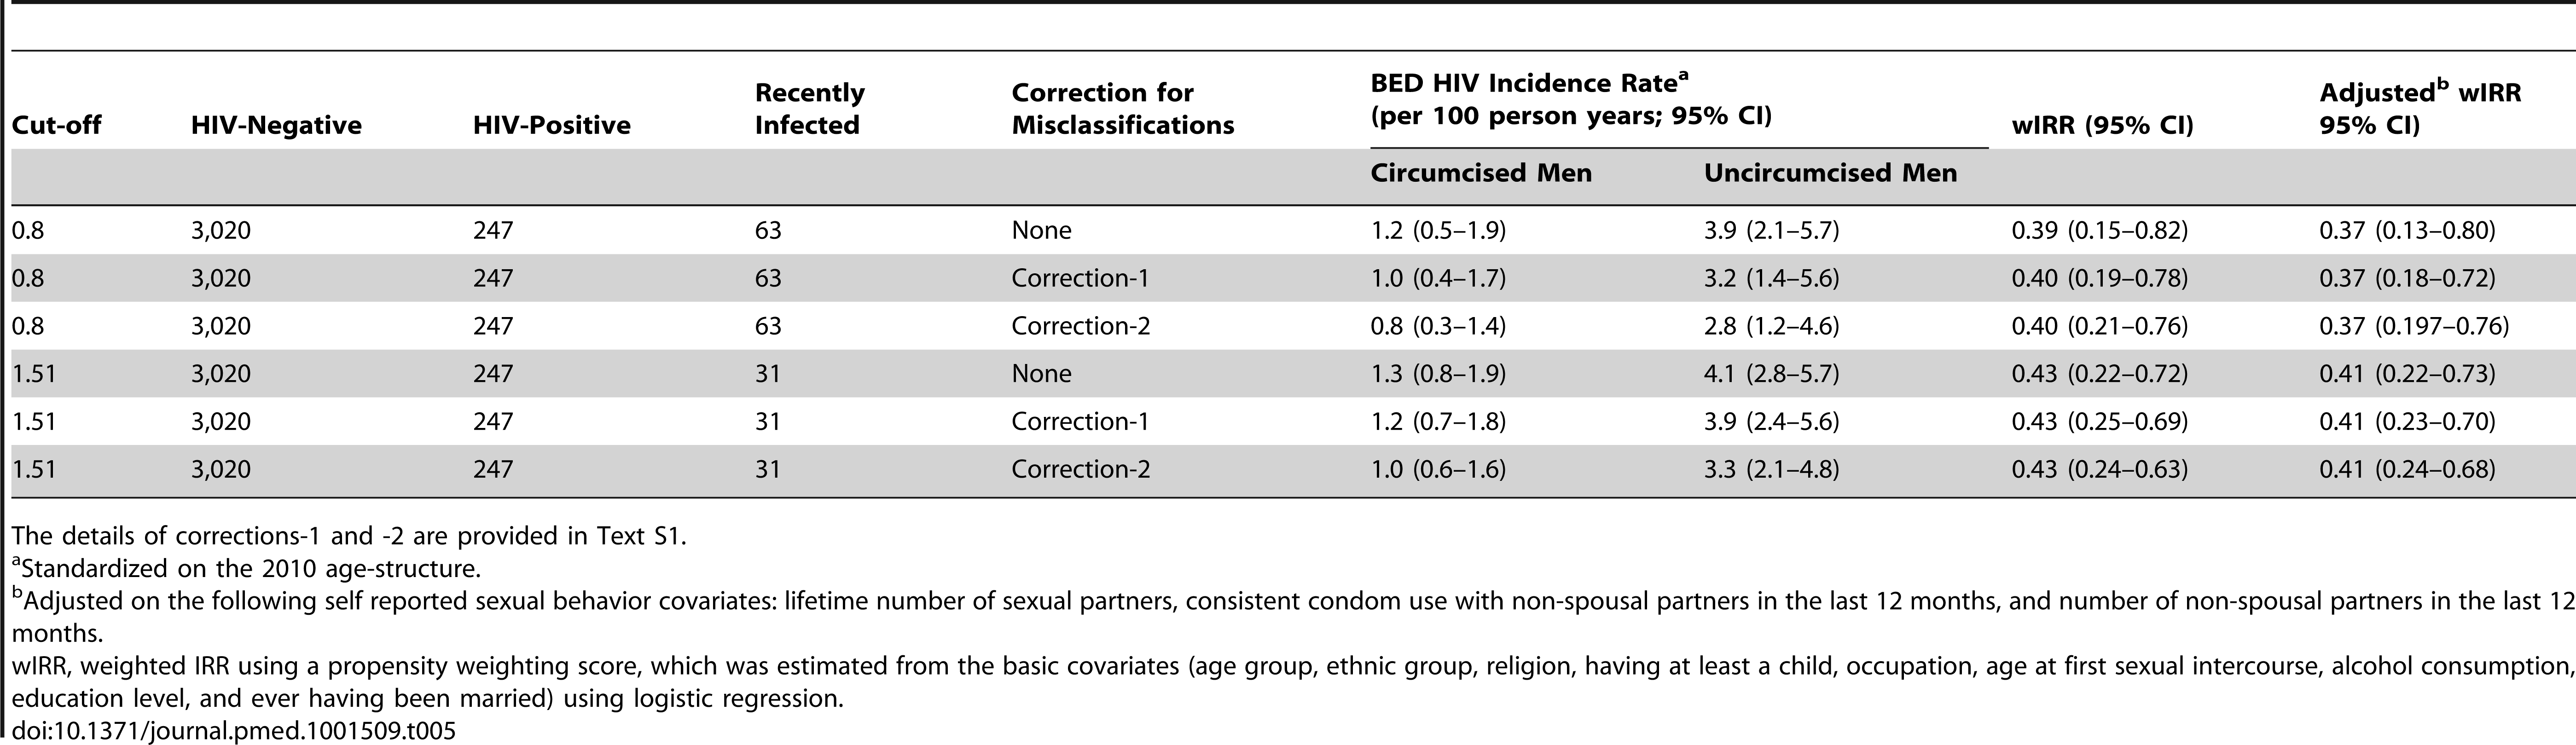 HIV incidence rates and rate ratios obtained in 2010–2011 with the BED incidence assay for selected cut-off values, with and without corrections for misclassifications.